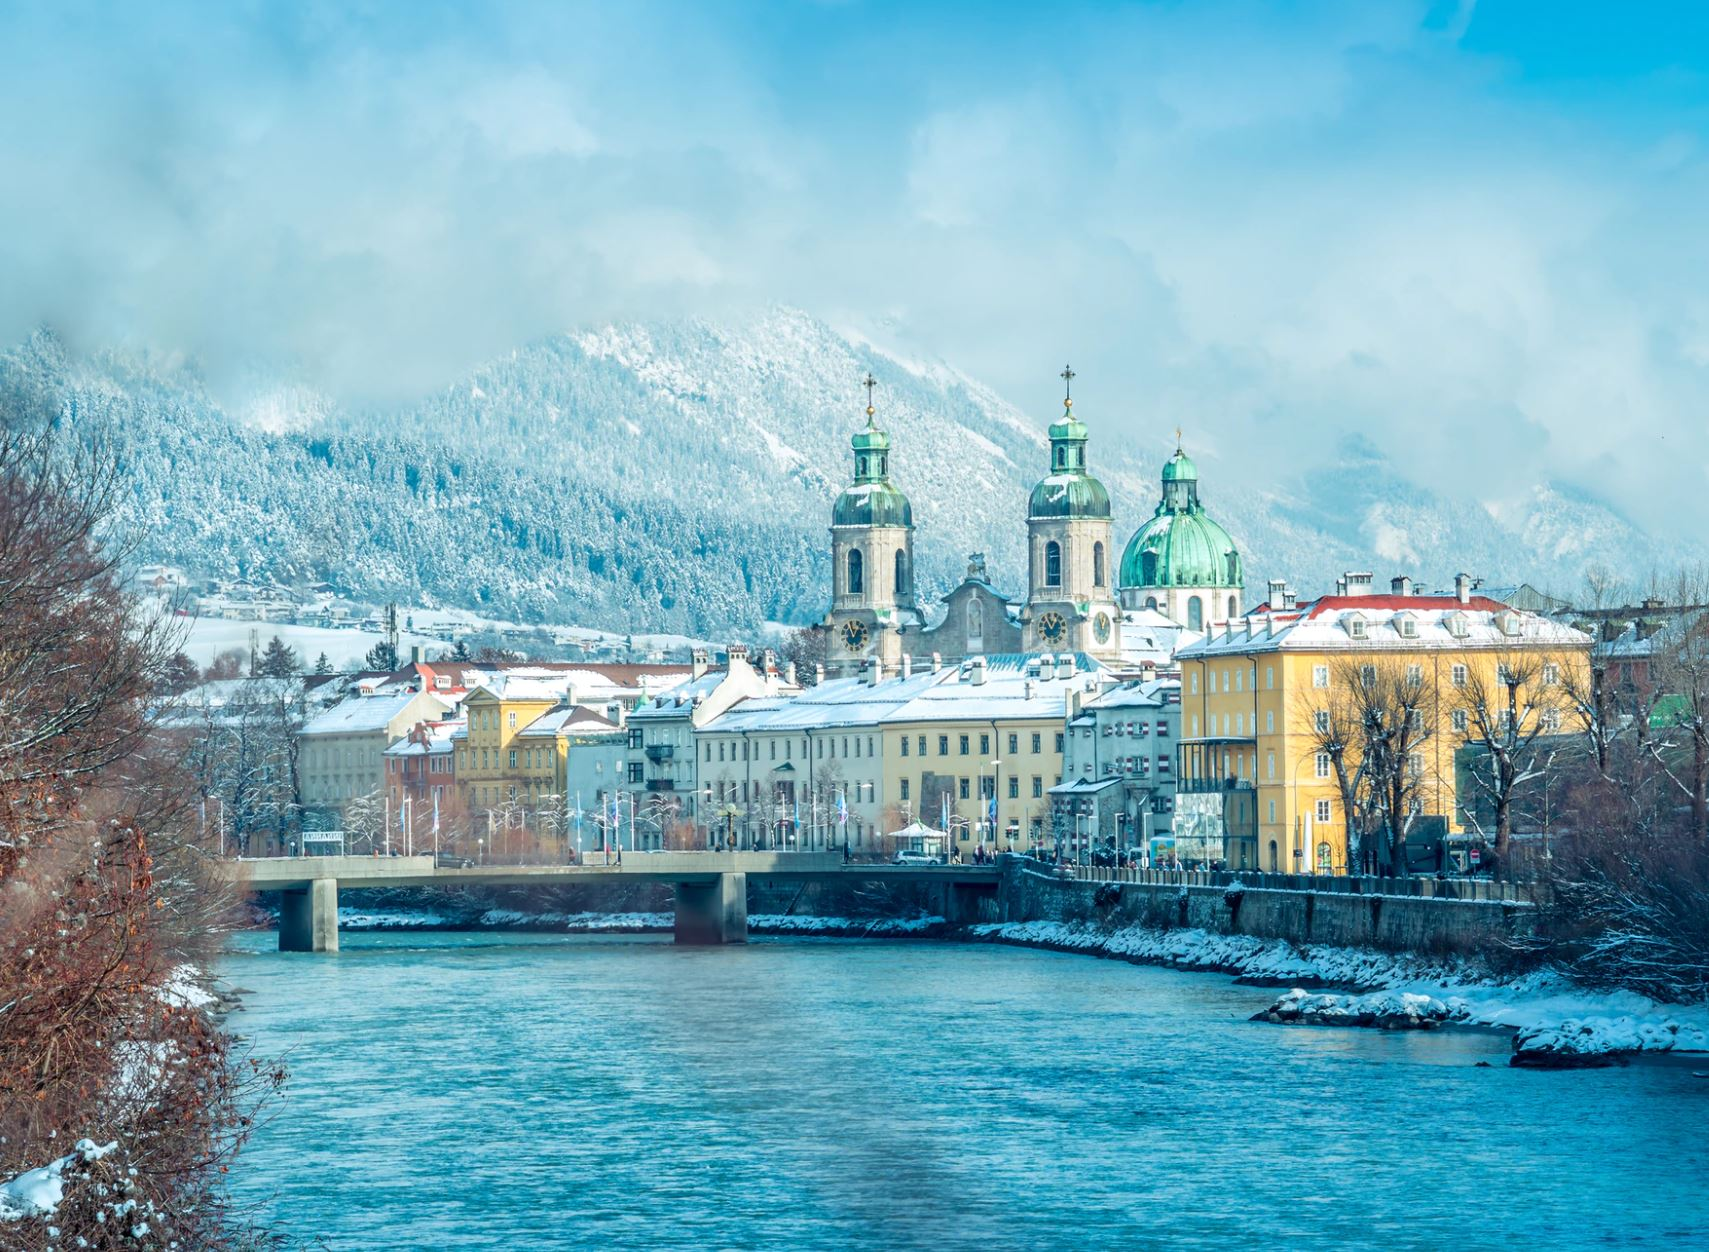 TEFL cities with skiing